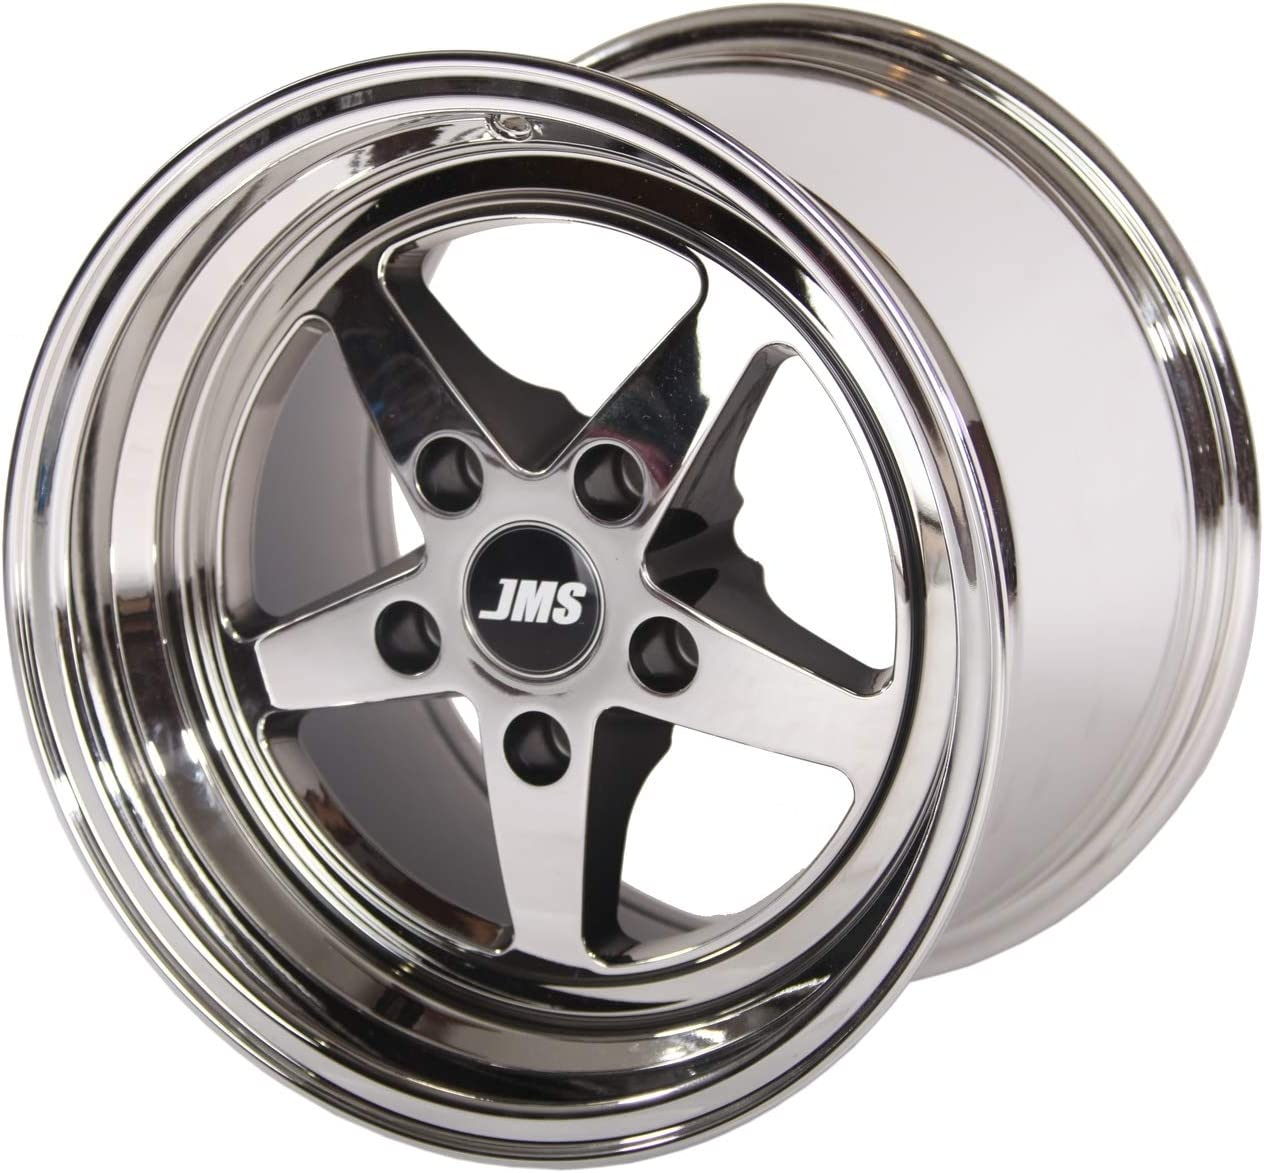 JMS Avenger FITS 1994-2002 Camaro and Firebird 17 INCH X 4.5 INCH Front Wheel W- Lug Nuts A1745175CZ